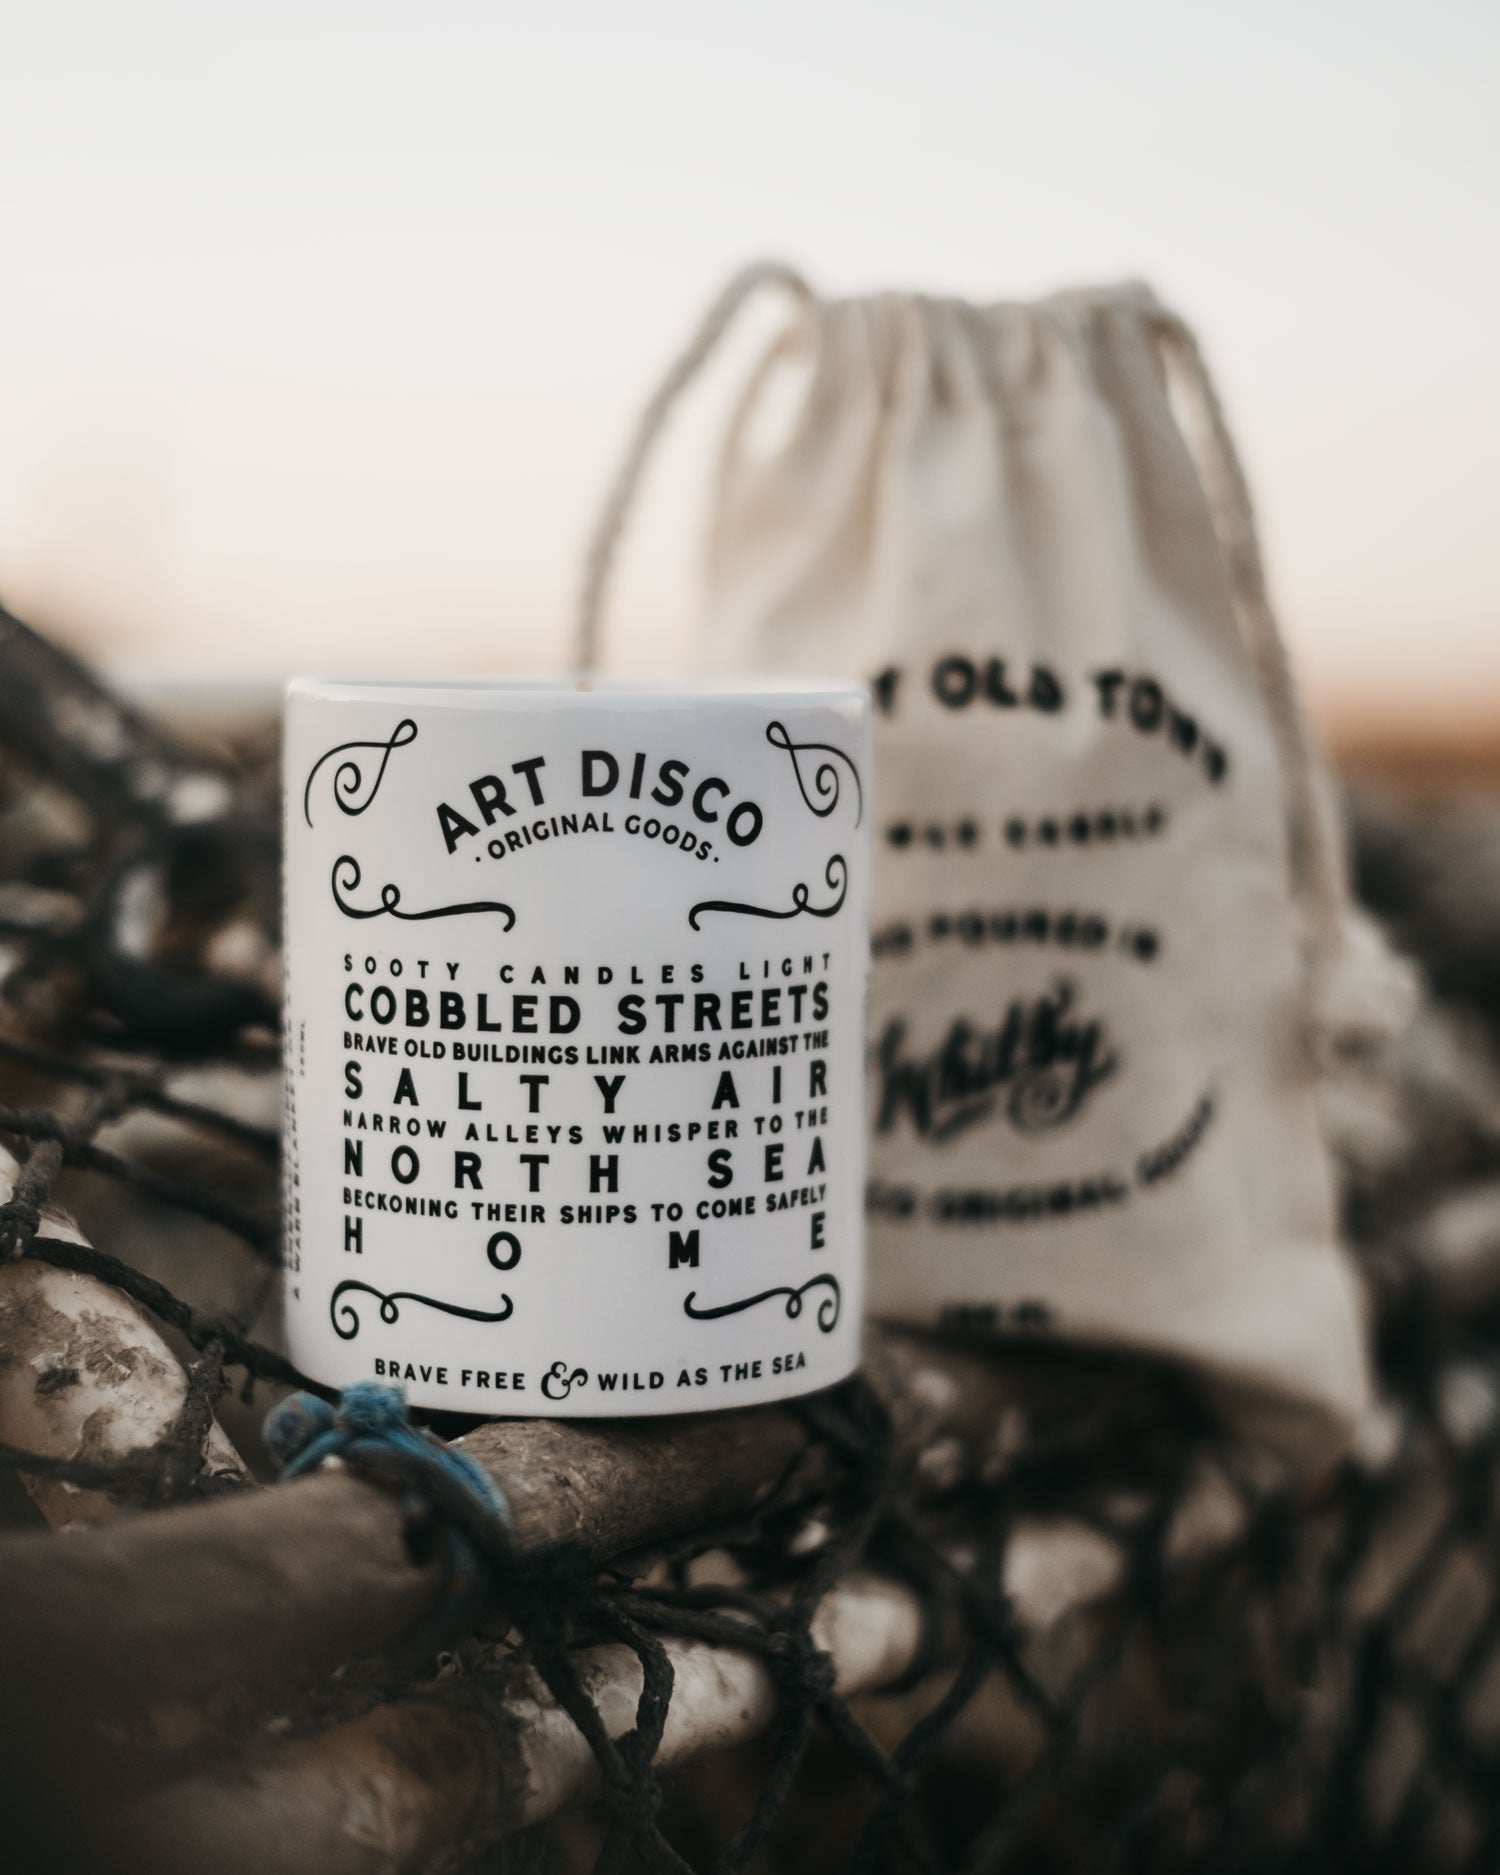 Whitby Old Town Hand Poured Smoked Bourbon & Honeysuckle Soy Wax Candle by ART DISCO Original Goods in Whitby